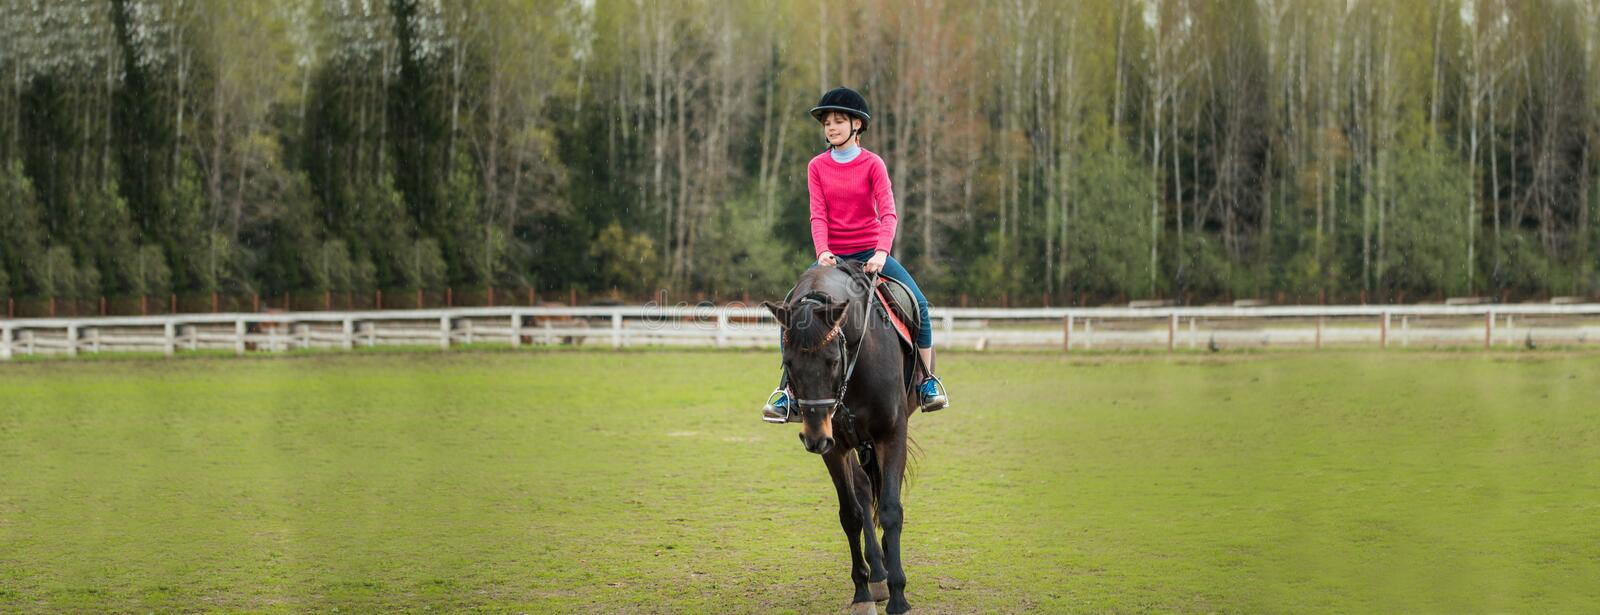 Young sportswoman riding horse in equestrian show jumps competition. Teenage girl ride a horse royalty free stock images